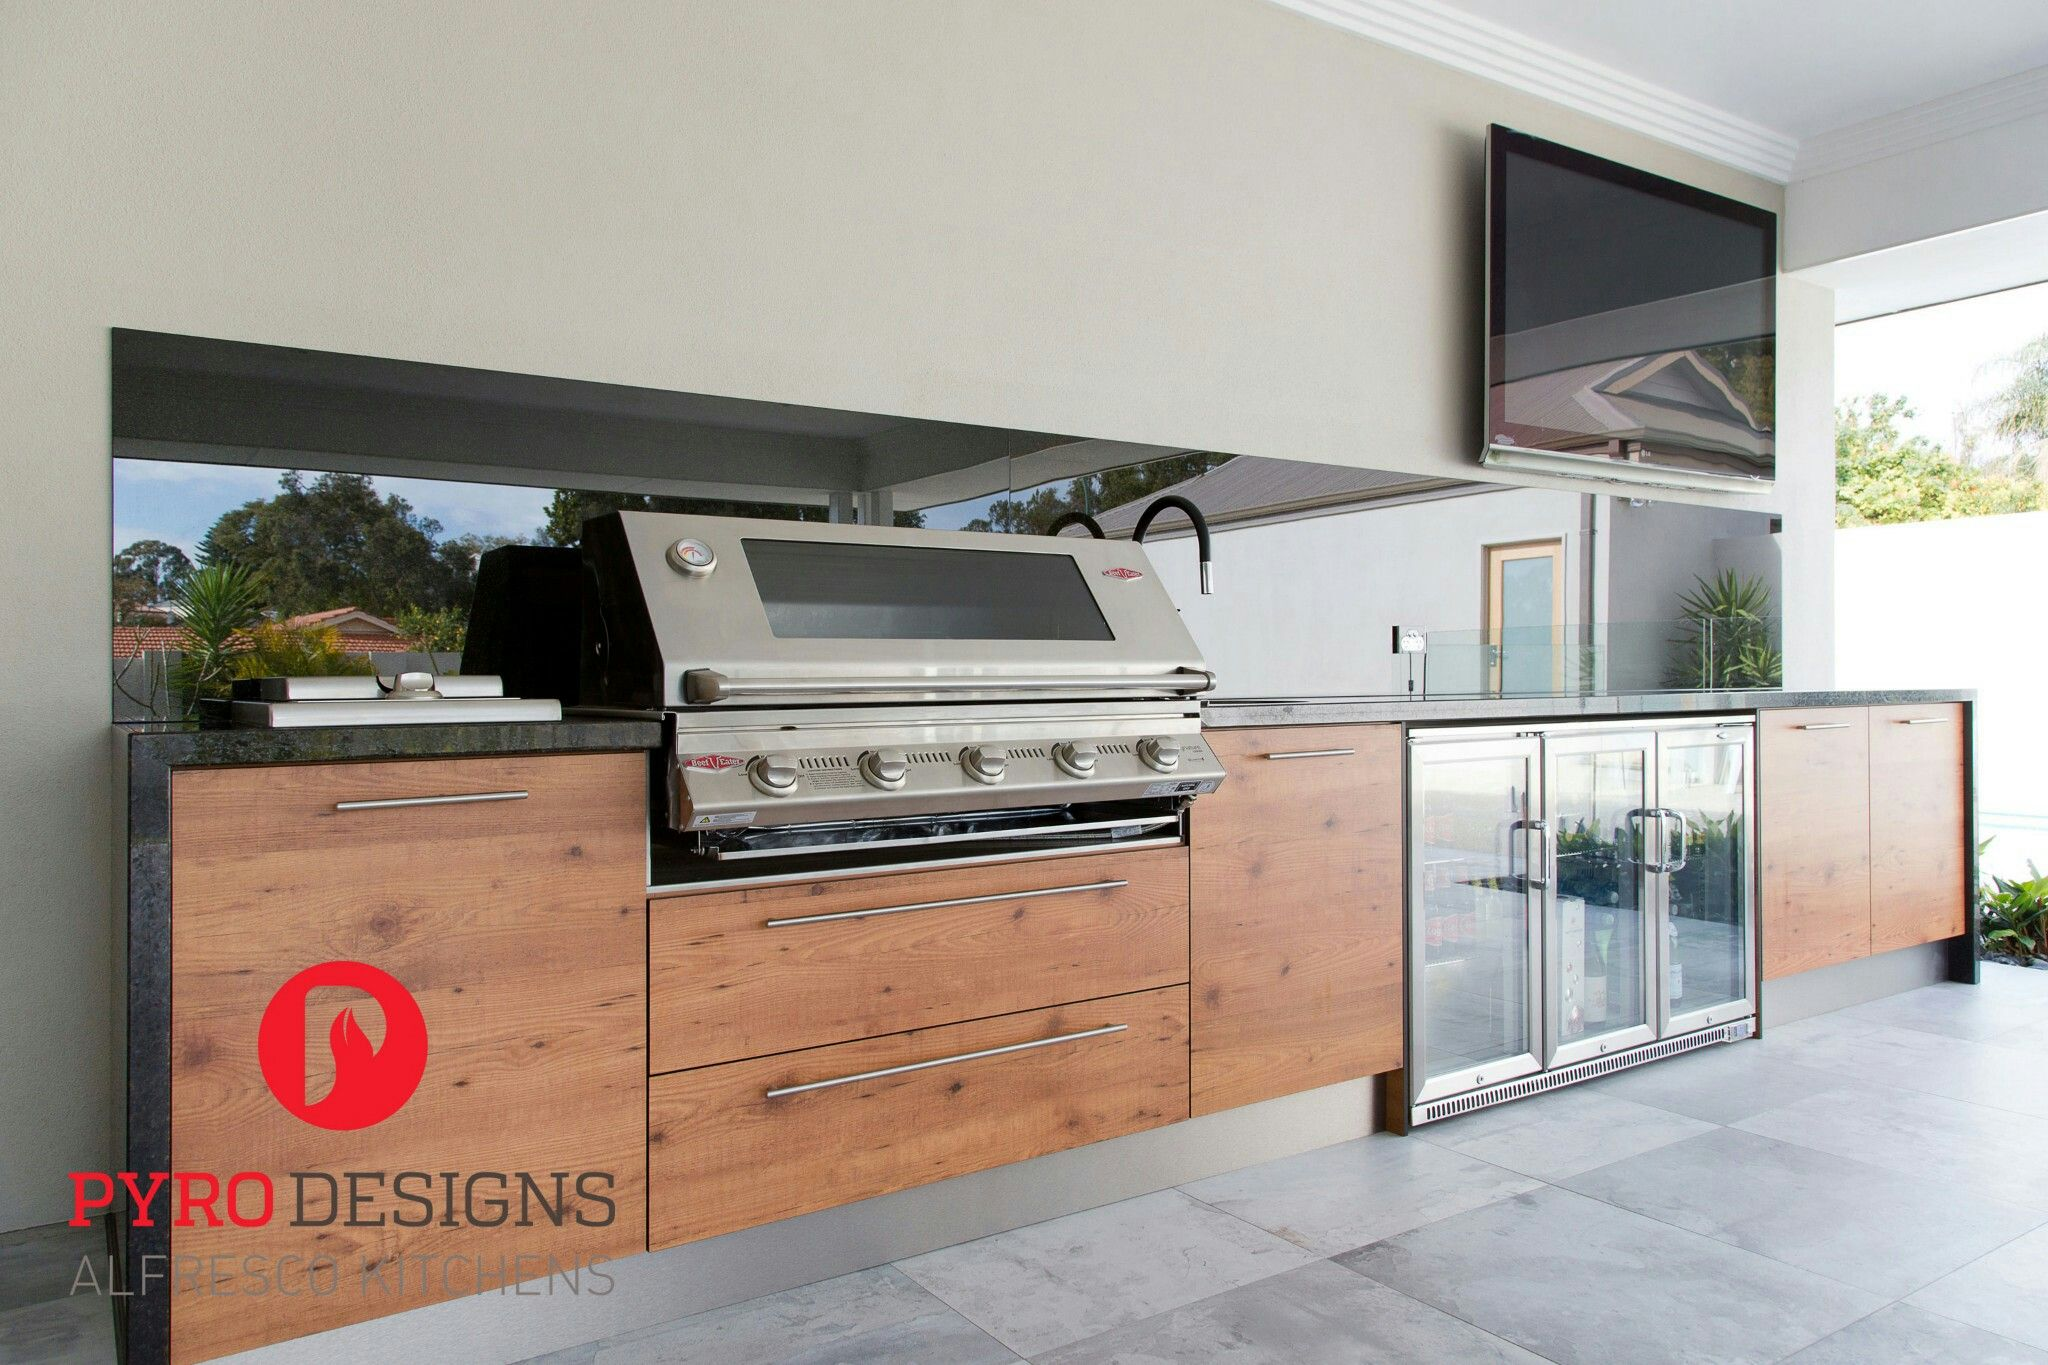 Pyro Designs Alfresco Kitchens